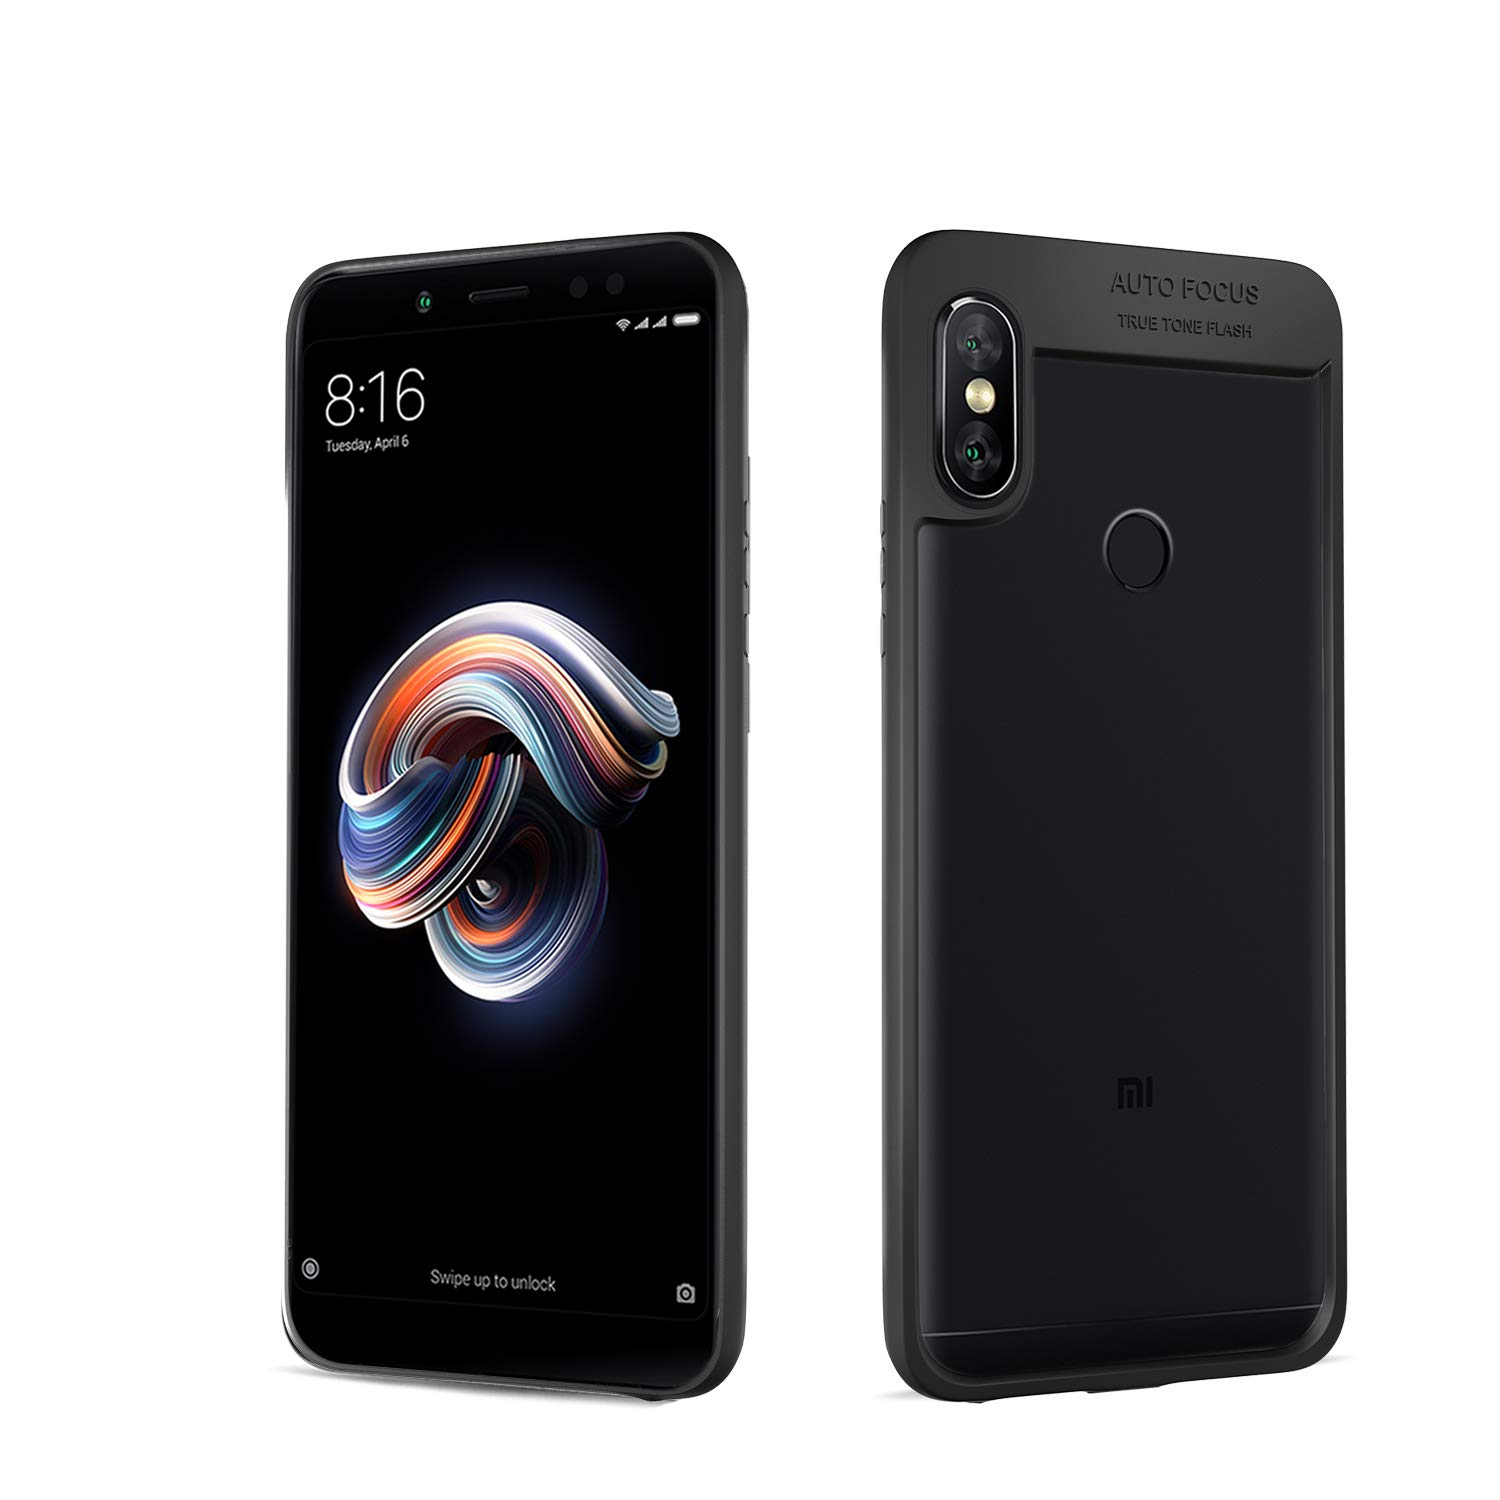 new product 7e7fd d34ee CELLBELL® Autofocus Shock Proof Back Cover for Xiaomi Redmi Note 5  Pro(Black)